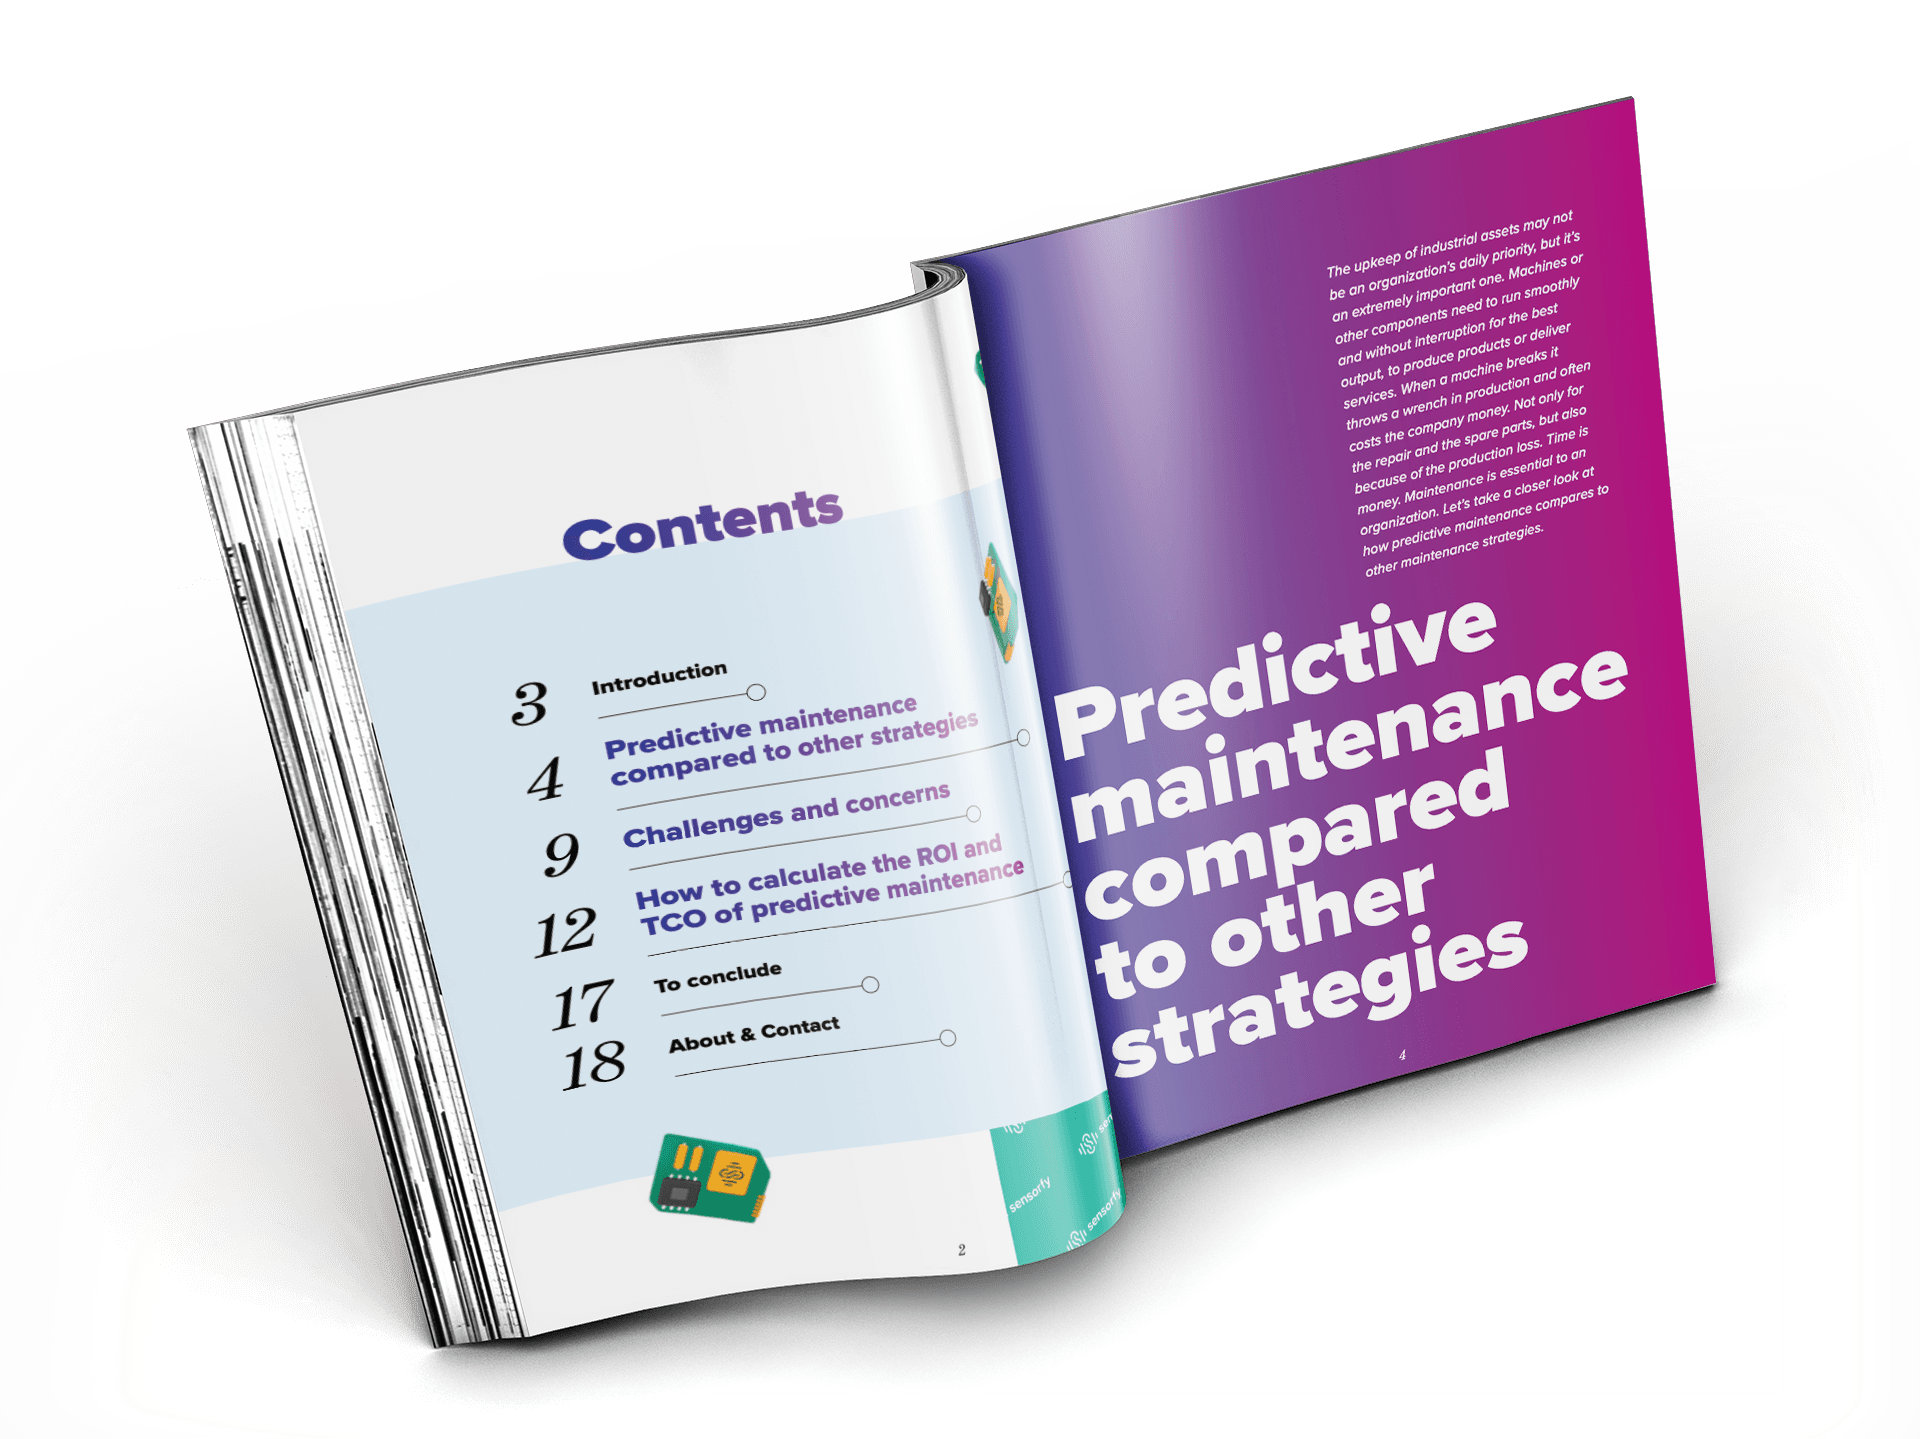 Ebook featured - The essential guide to predictive maintenance for OEMs